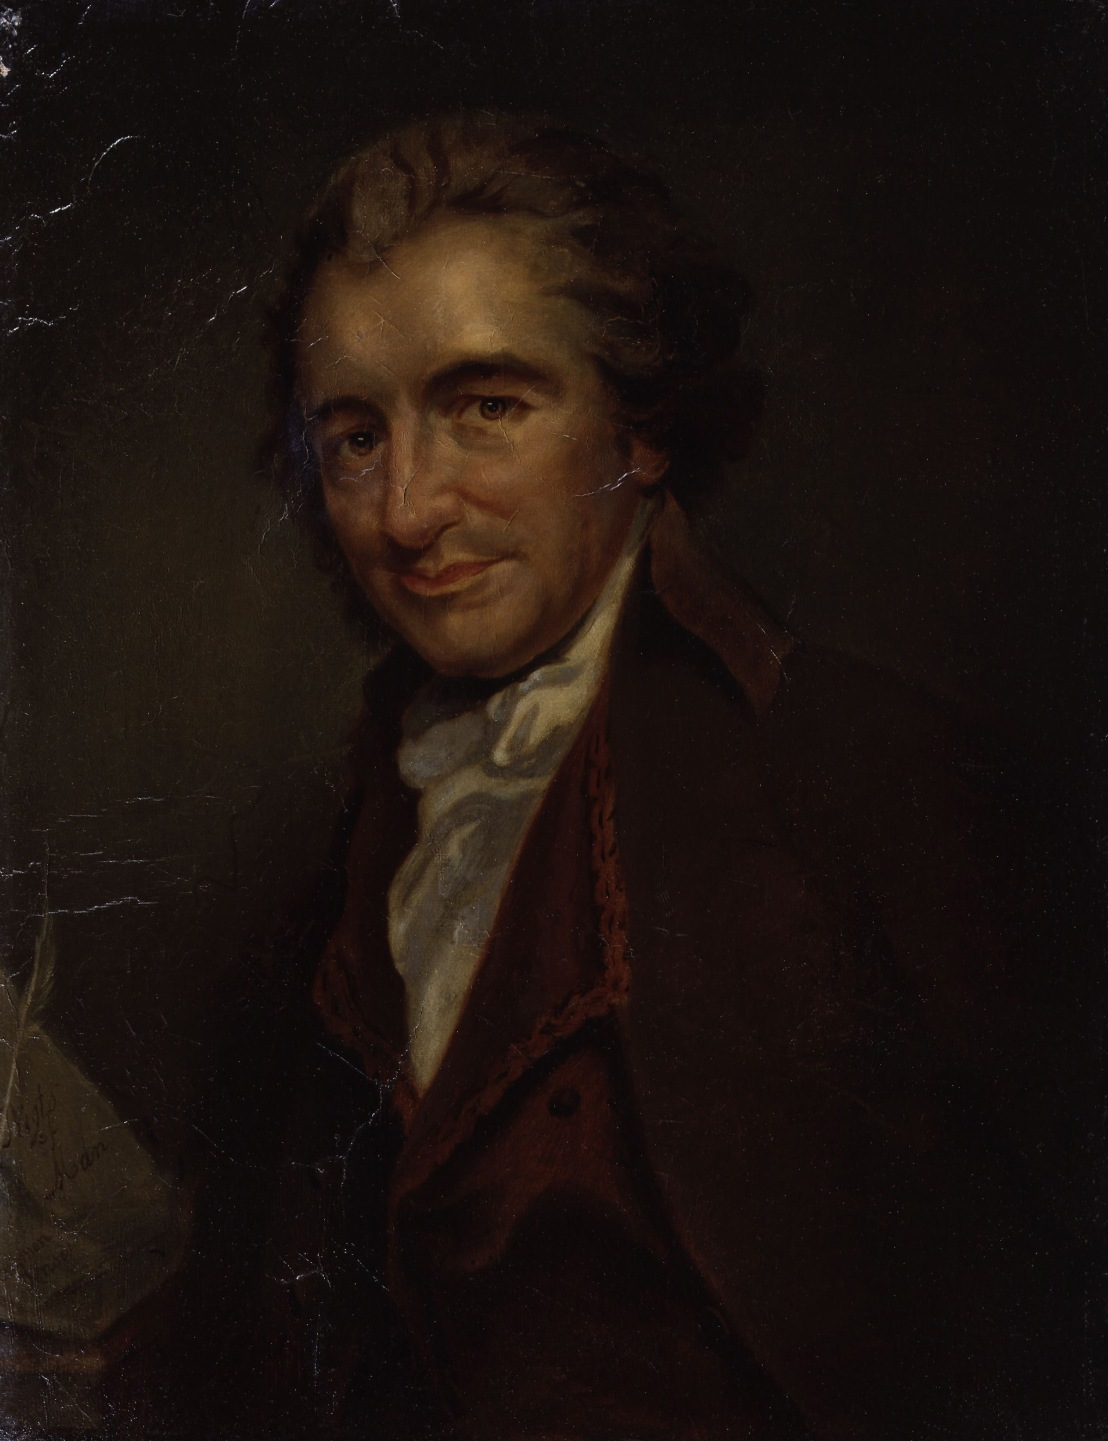 Thomas Paine: Rights, Reason and Common Sense Deviance